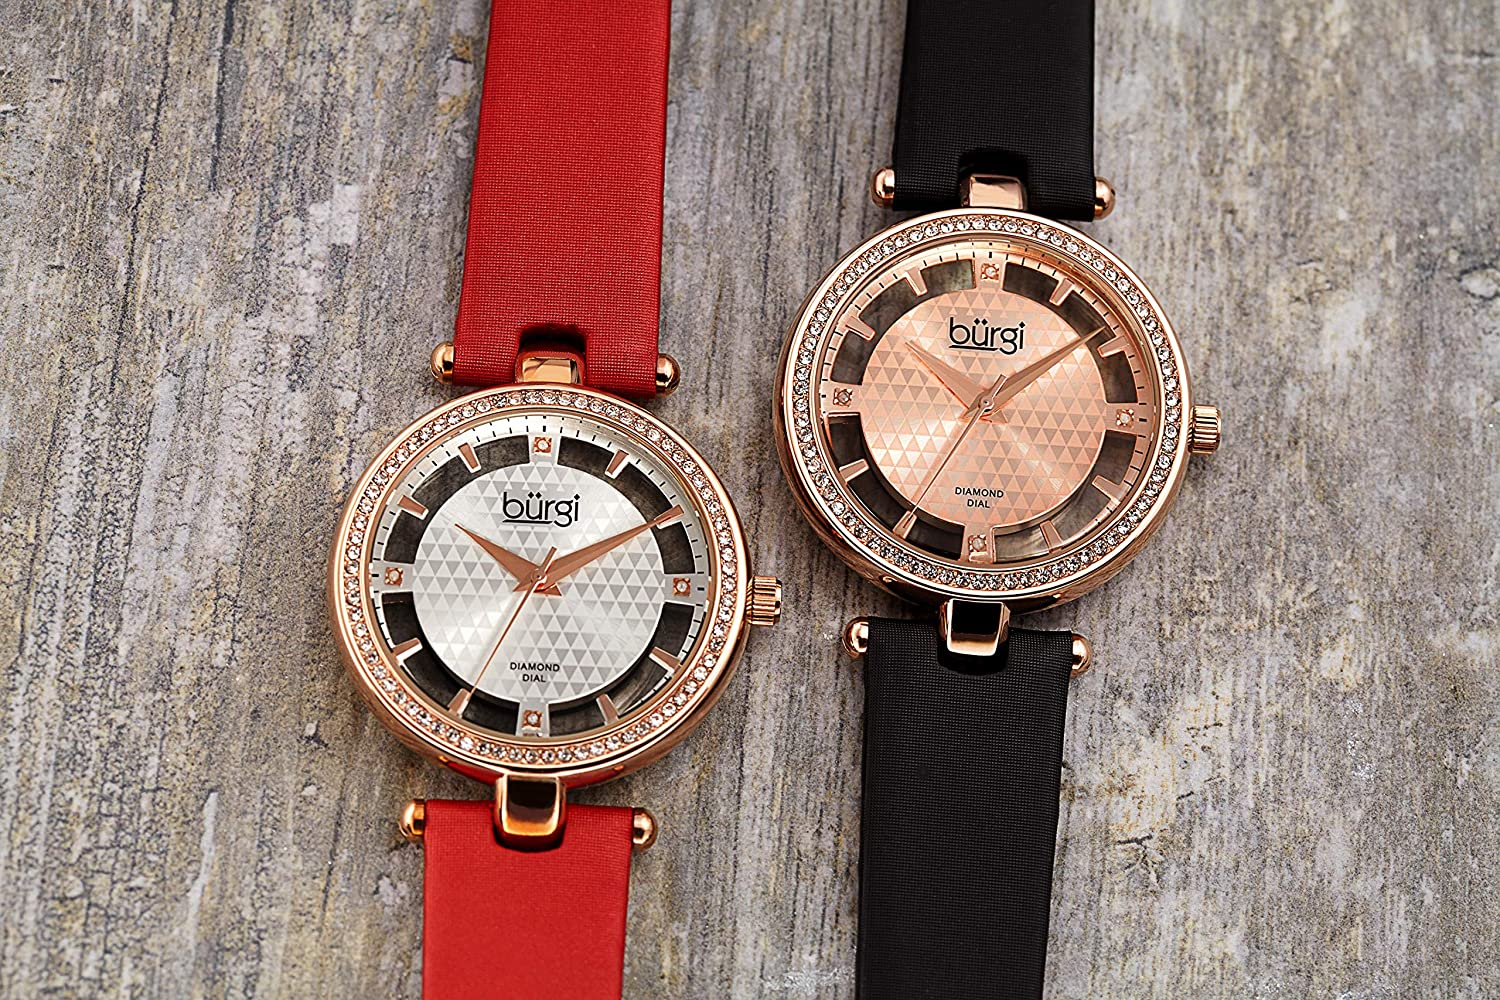 Burgi Swarovski Crystal Studded Watch - 4 Genuine Diamond Markers, See Through and Sunray Dial On Satin Over Leather Women's Watch - BUR104 Red